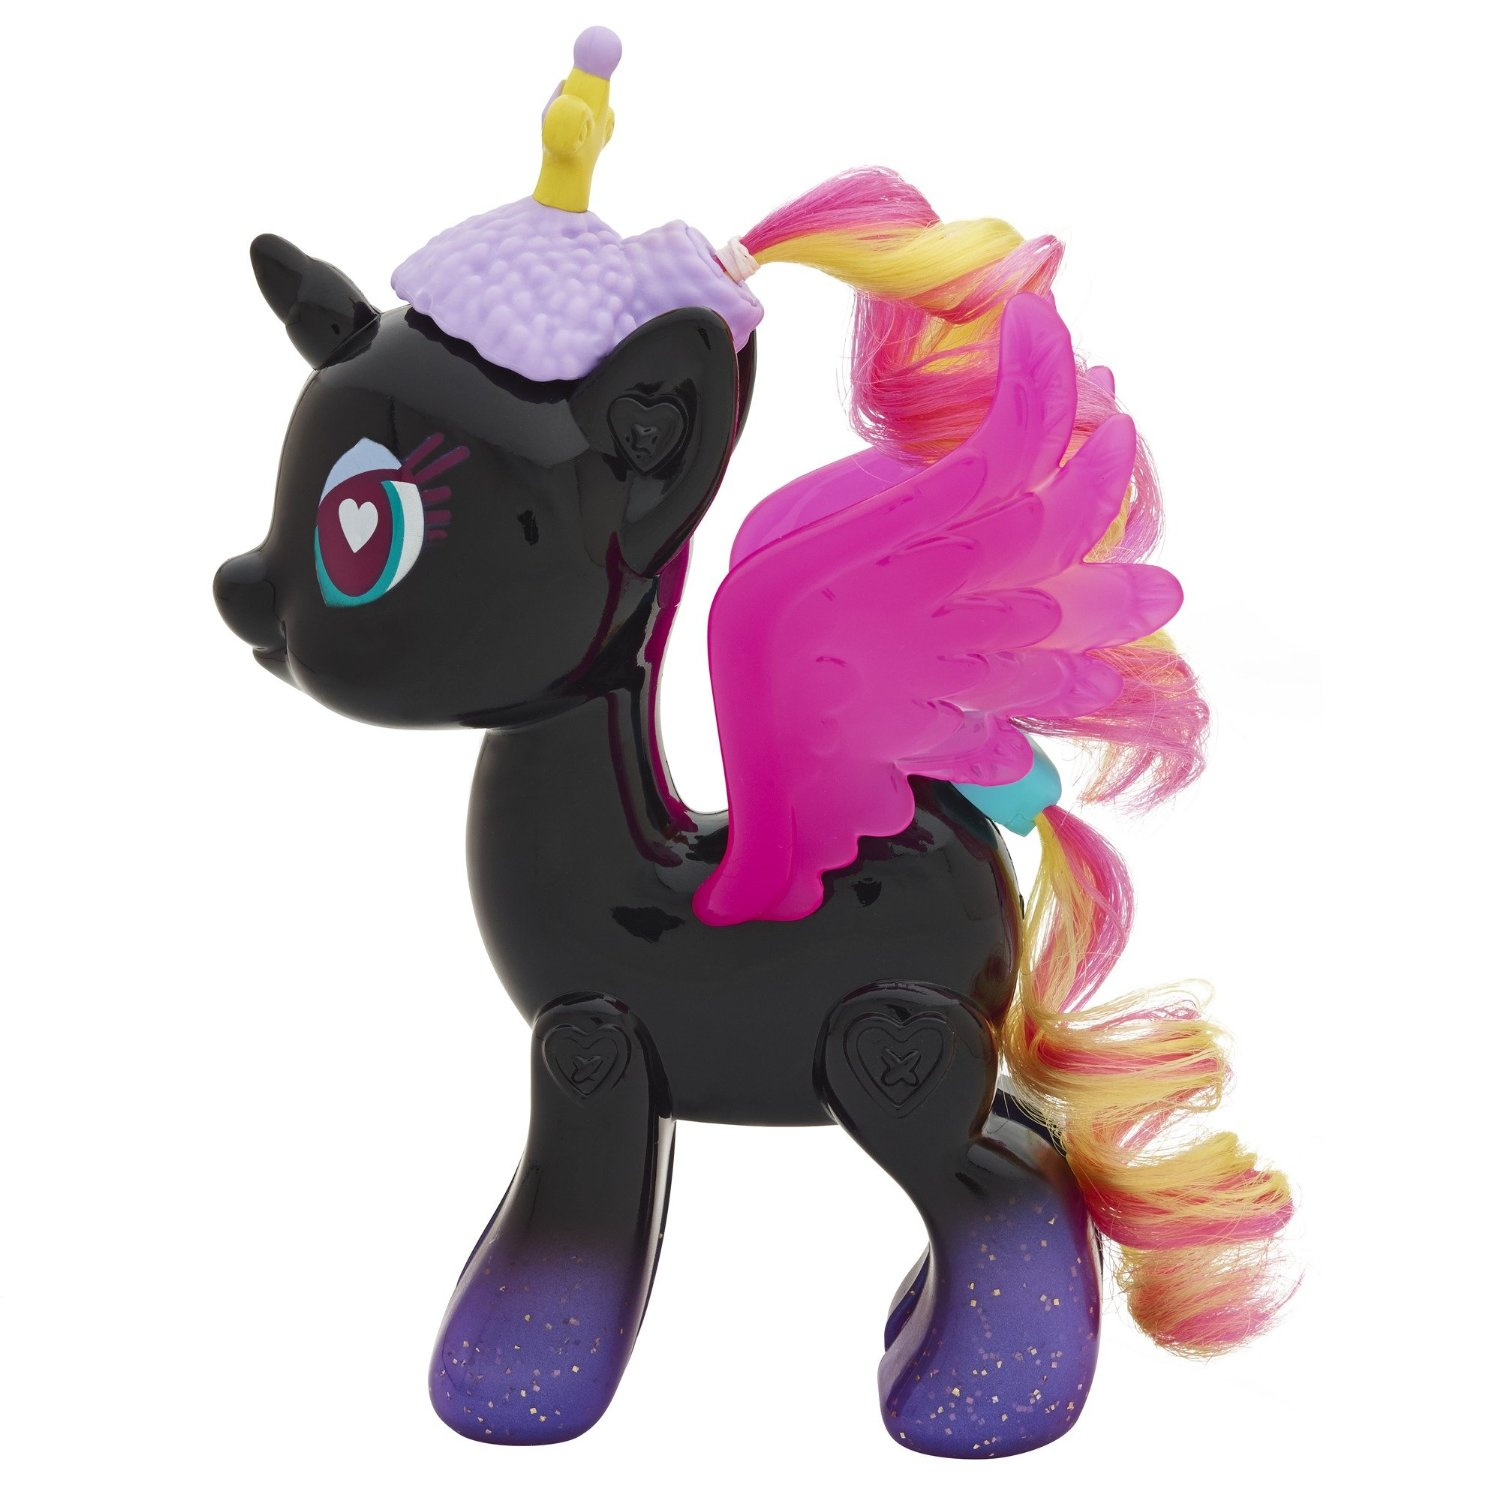 New hasbro pop ponies listed on amazon design a pony and - Princesse poney ...